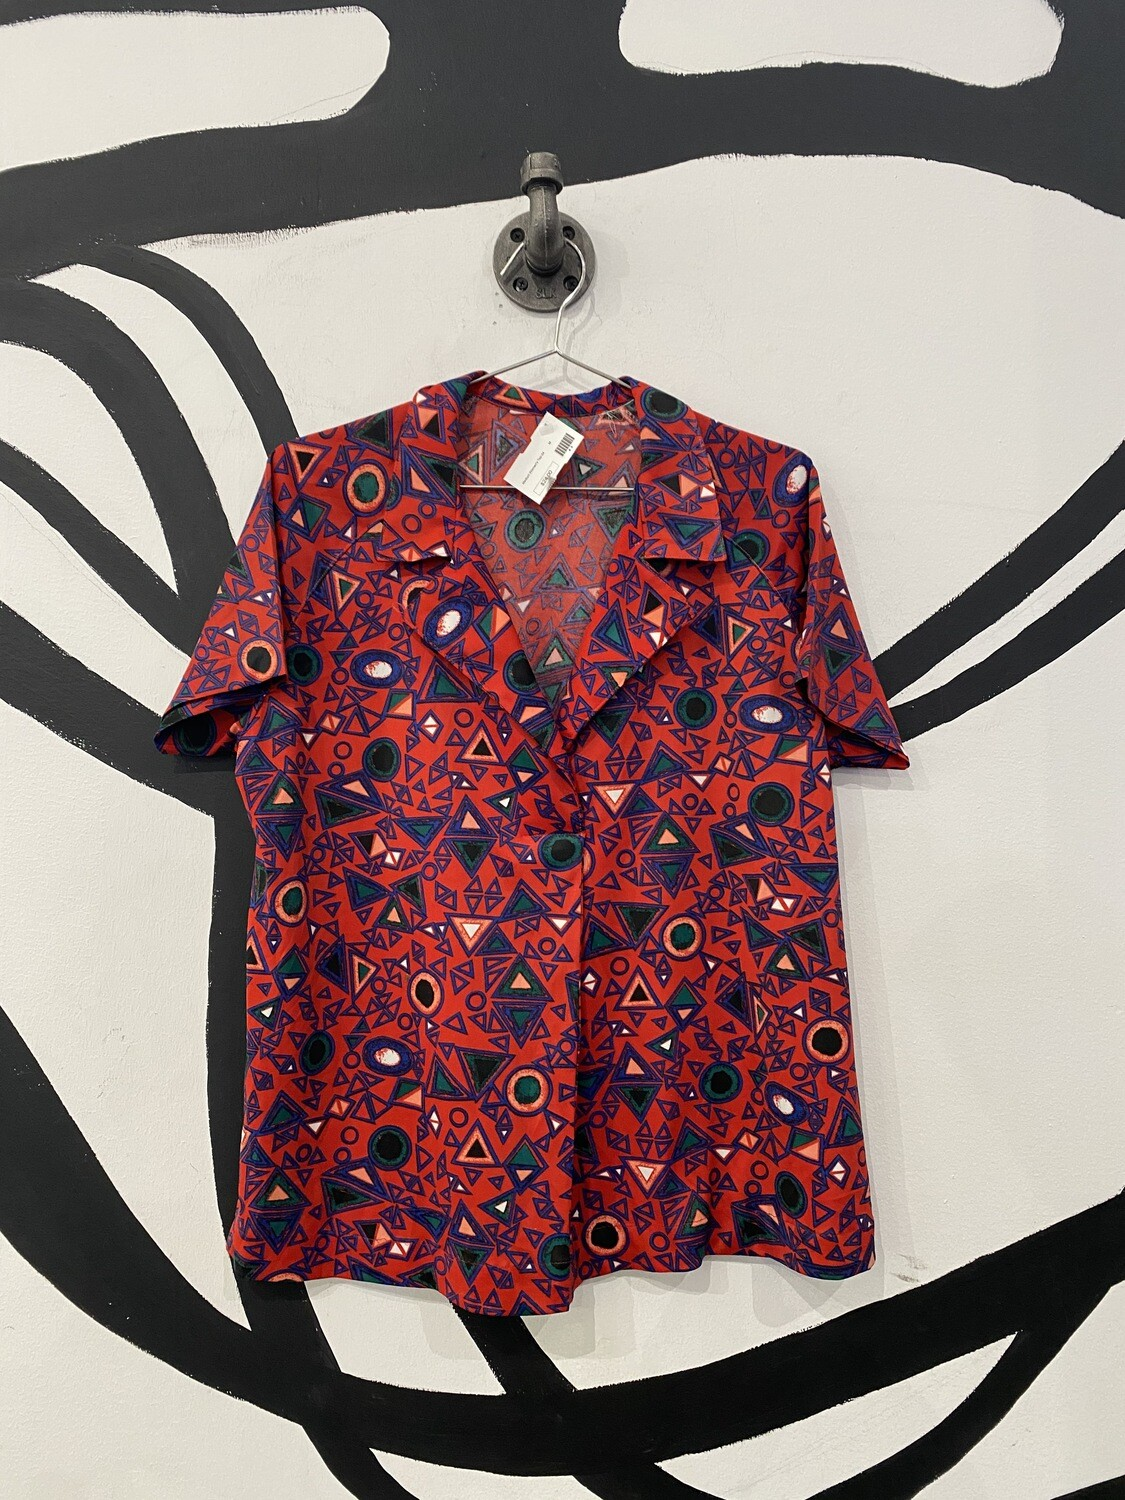 Red Revere Collar Patterned Blouse With Front Pleat Detail - Women's Size M